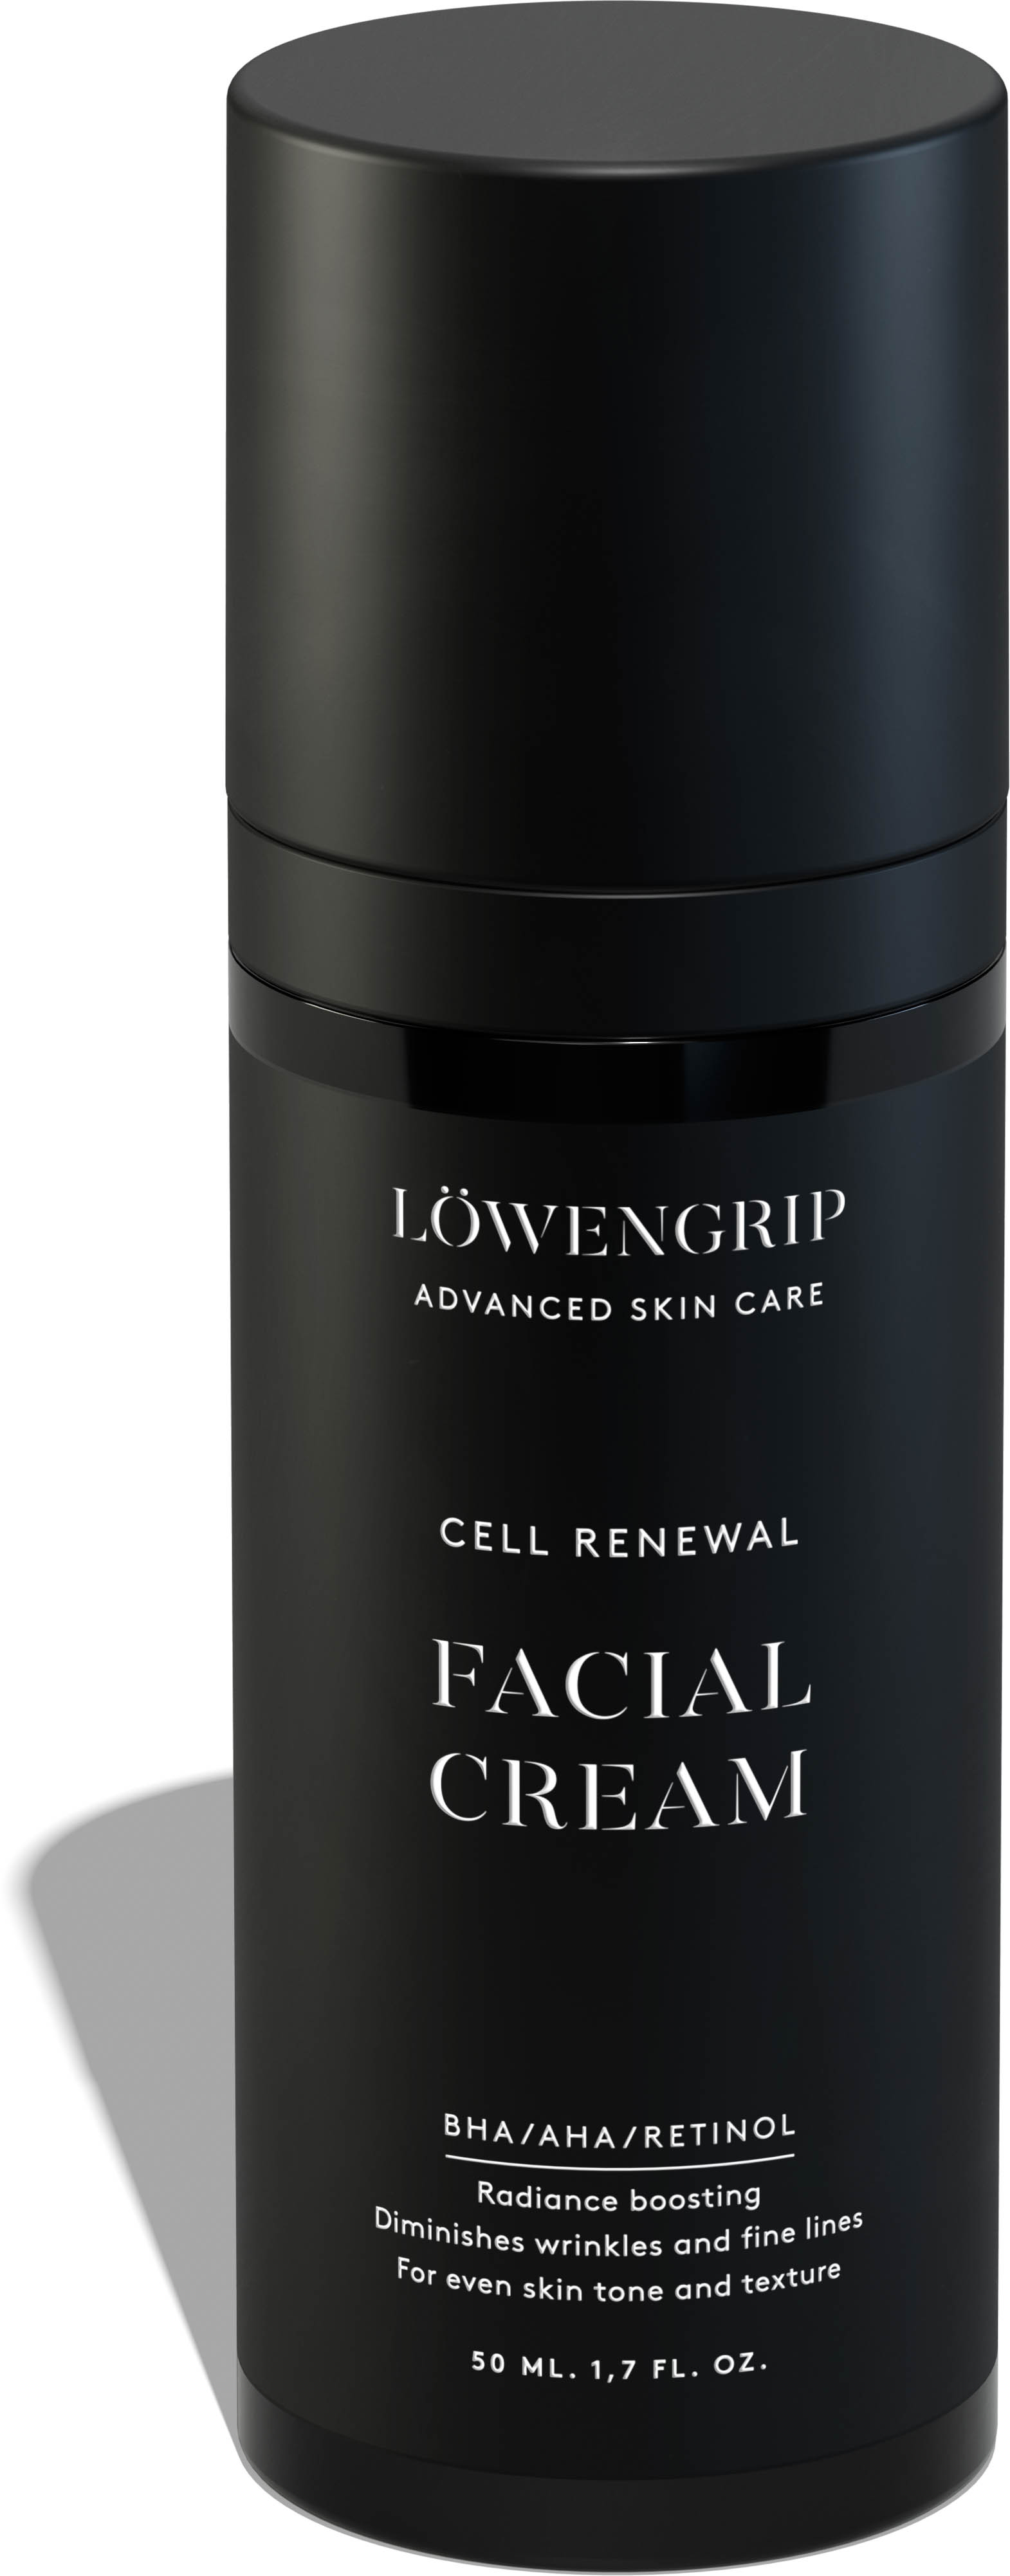 Advanced Skin Care - Cell Renewal Facial Cream 50 ml